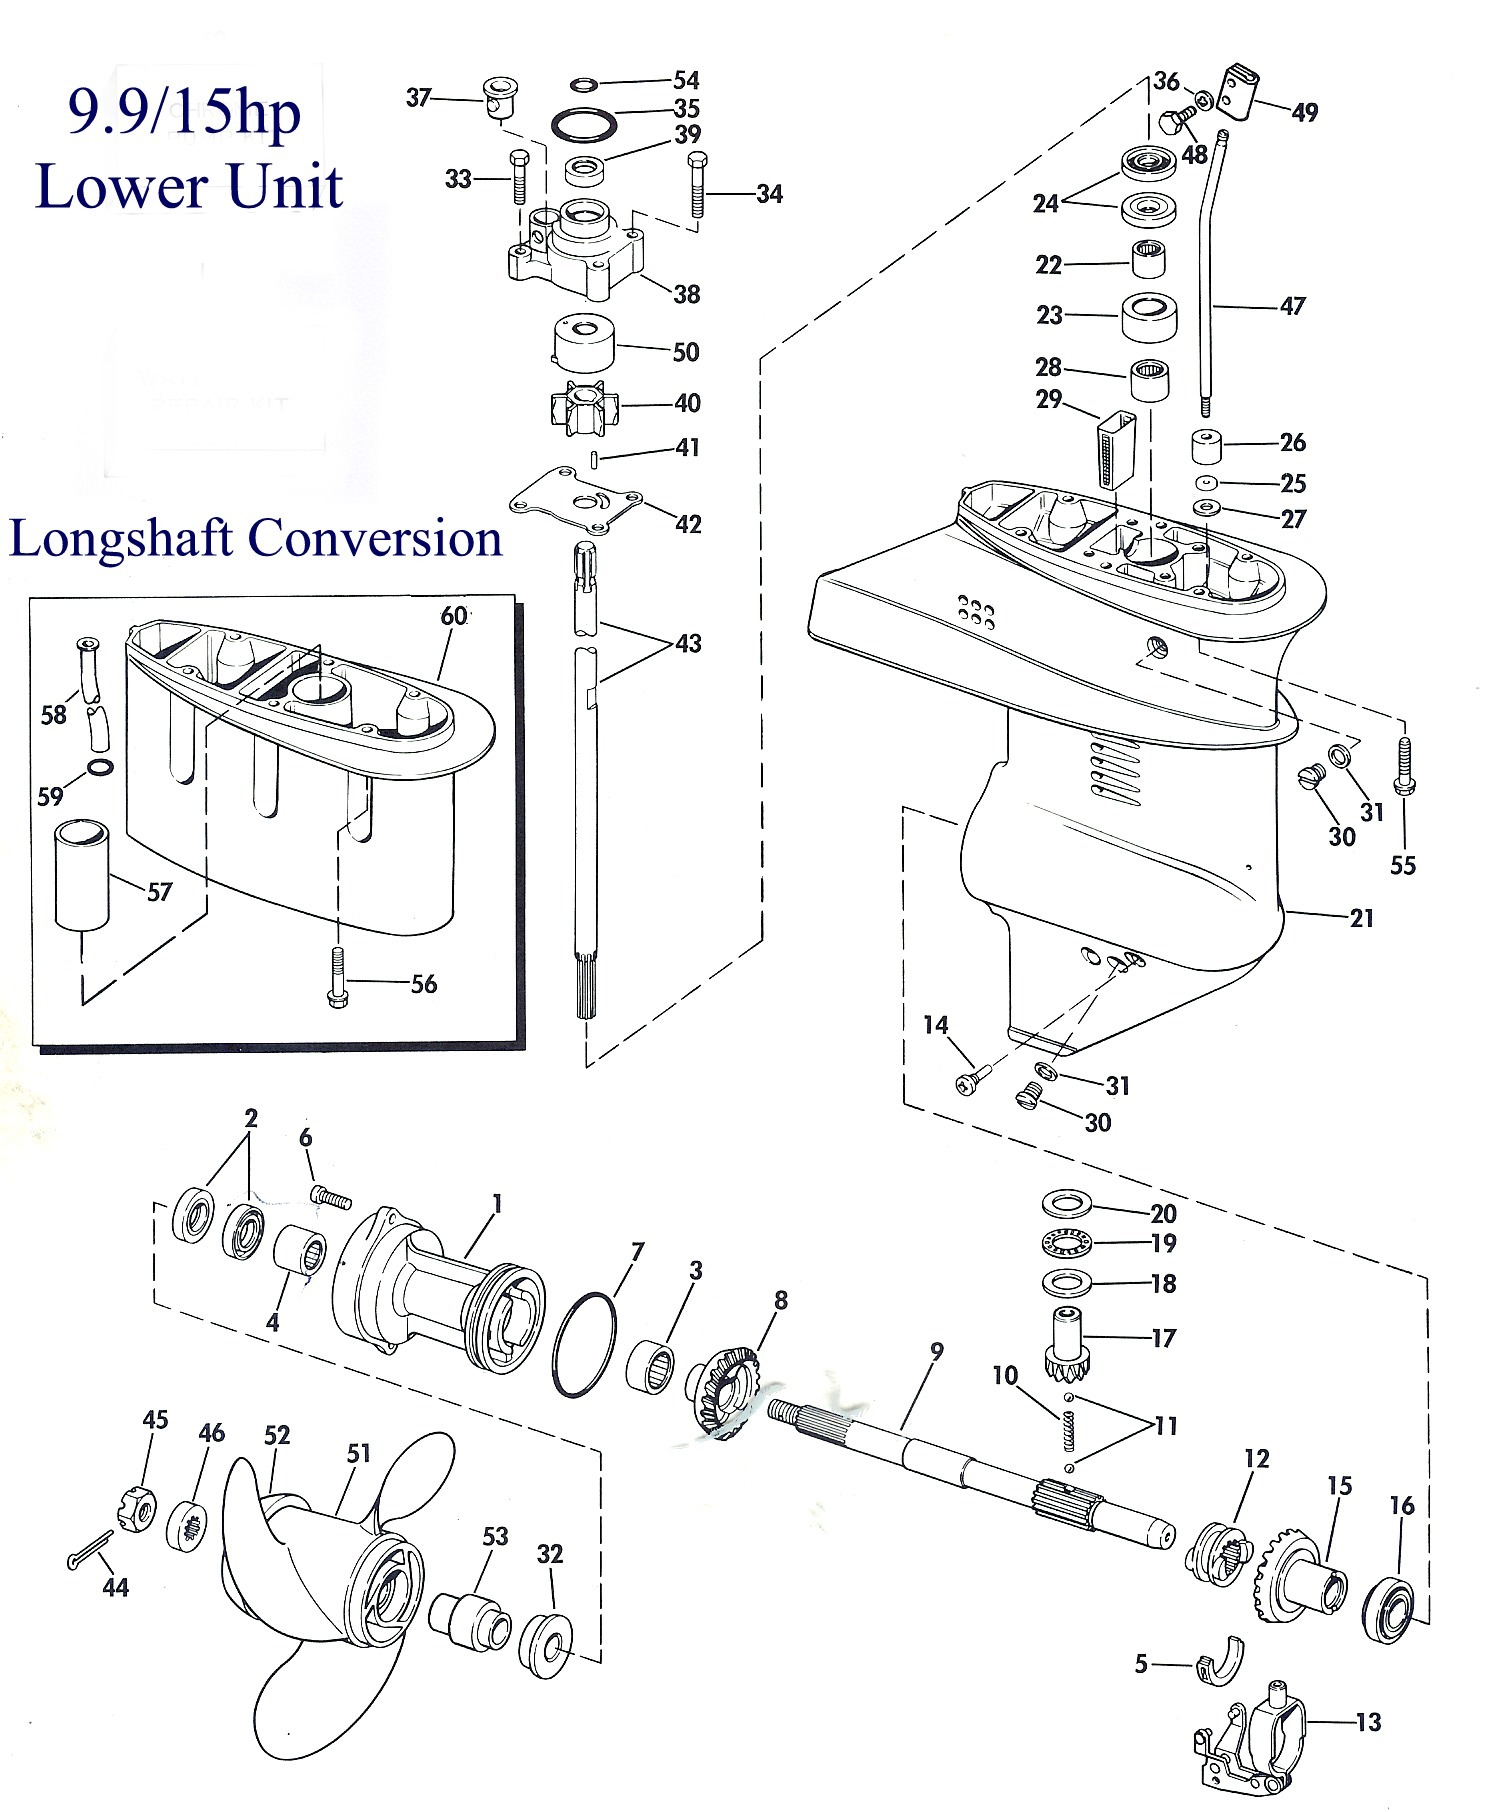 hight resolution of exploded view of the lower unit